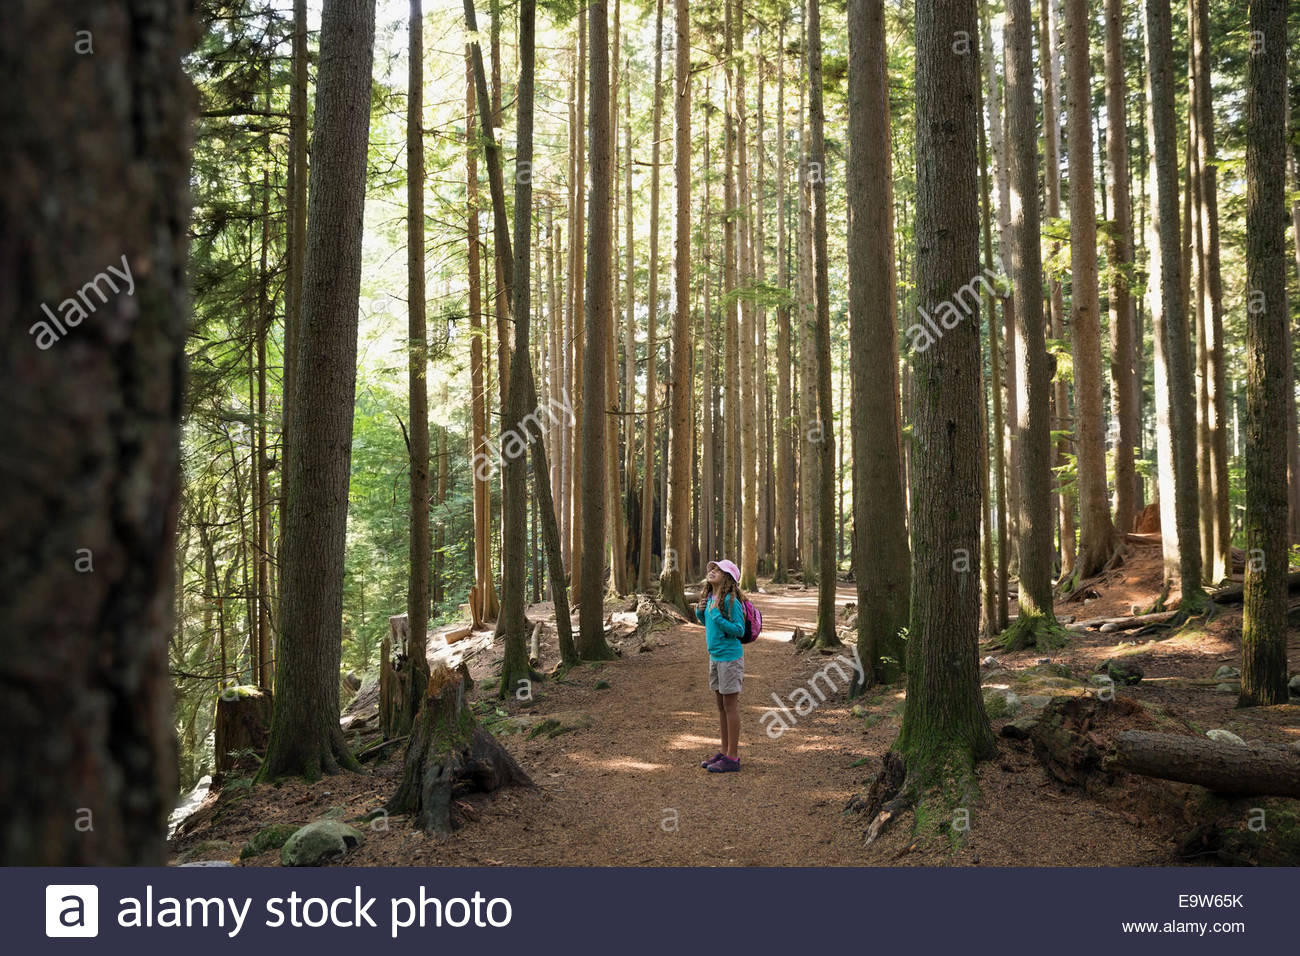 Girl hiking on trail in woods - Stock Image